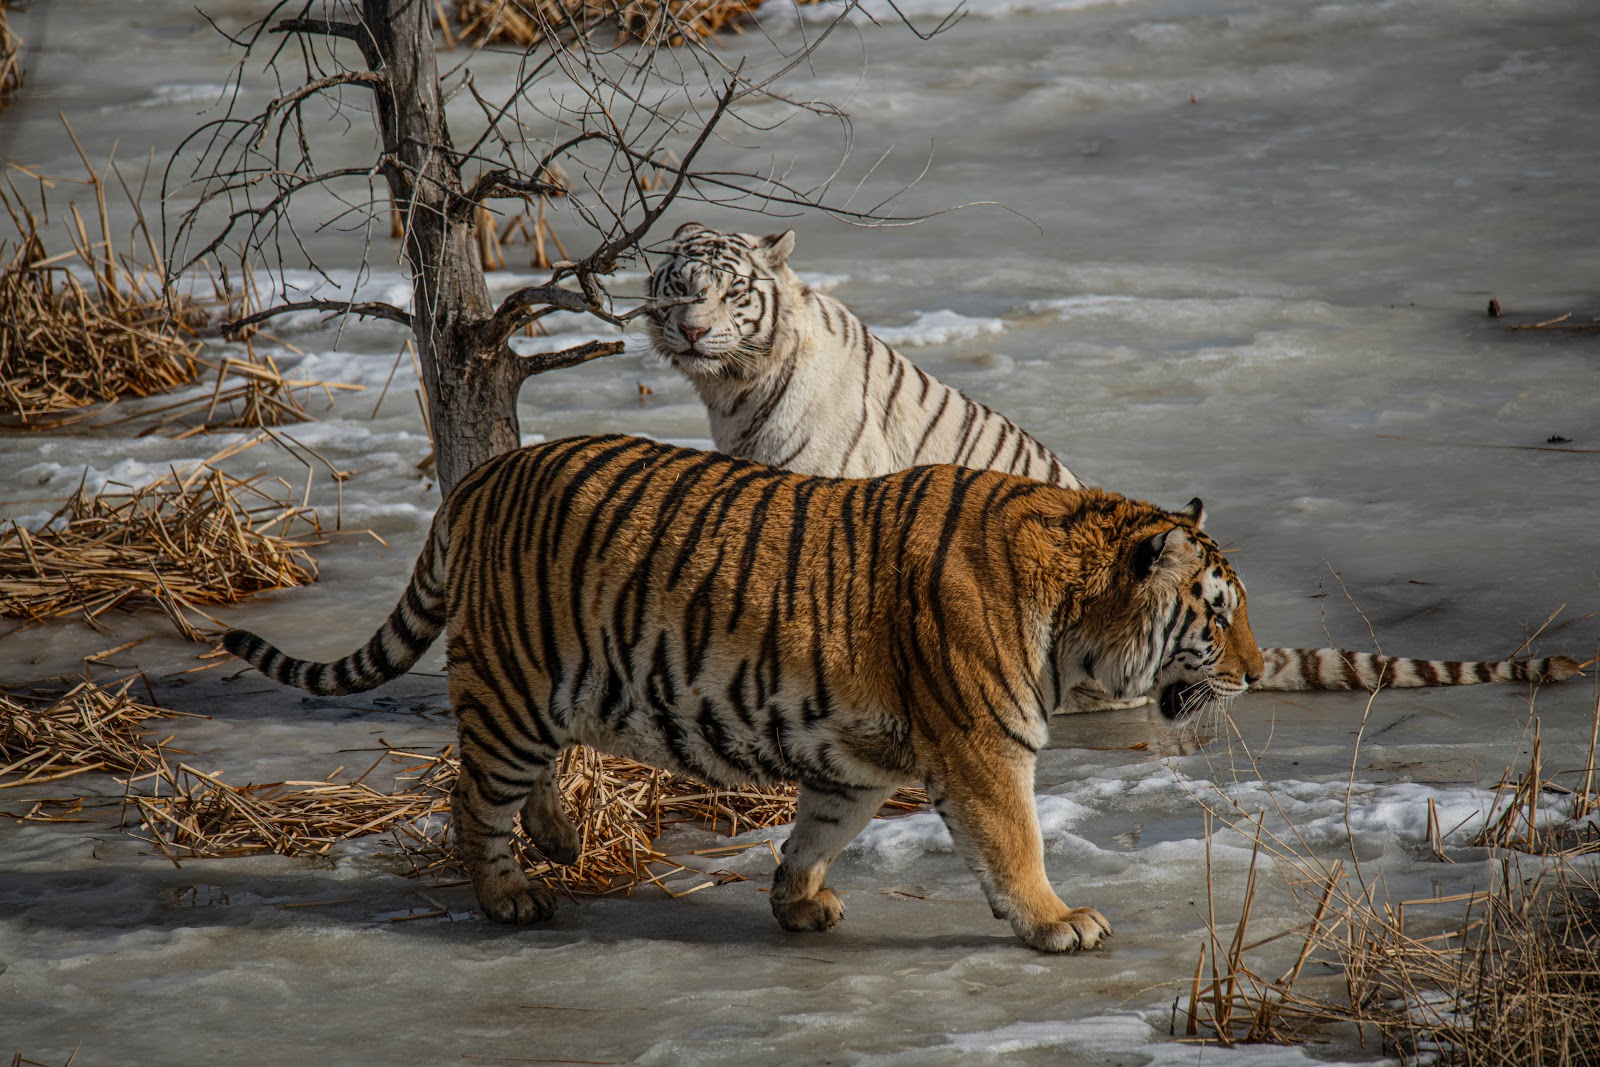 white-and-yellow-tiger-in-water-images